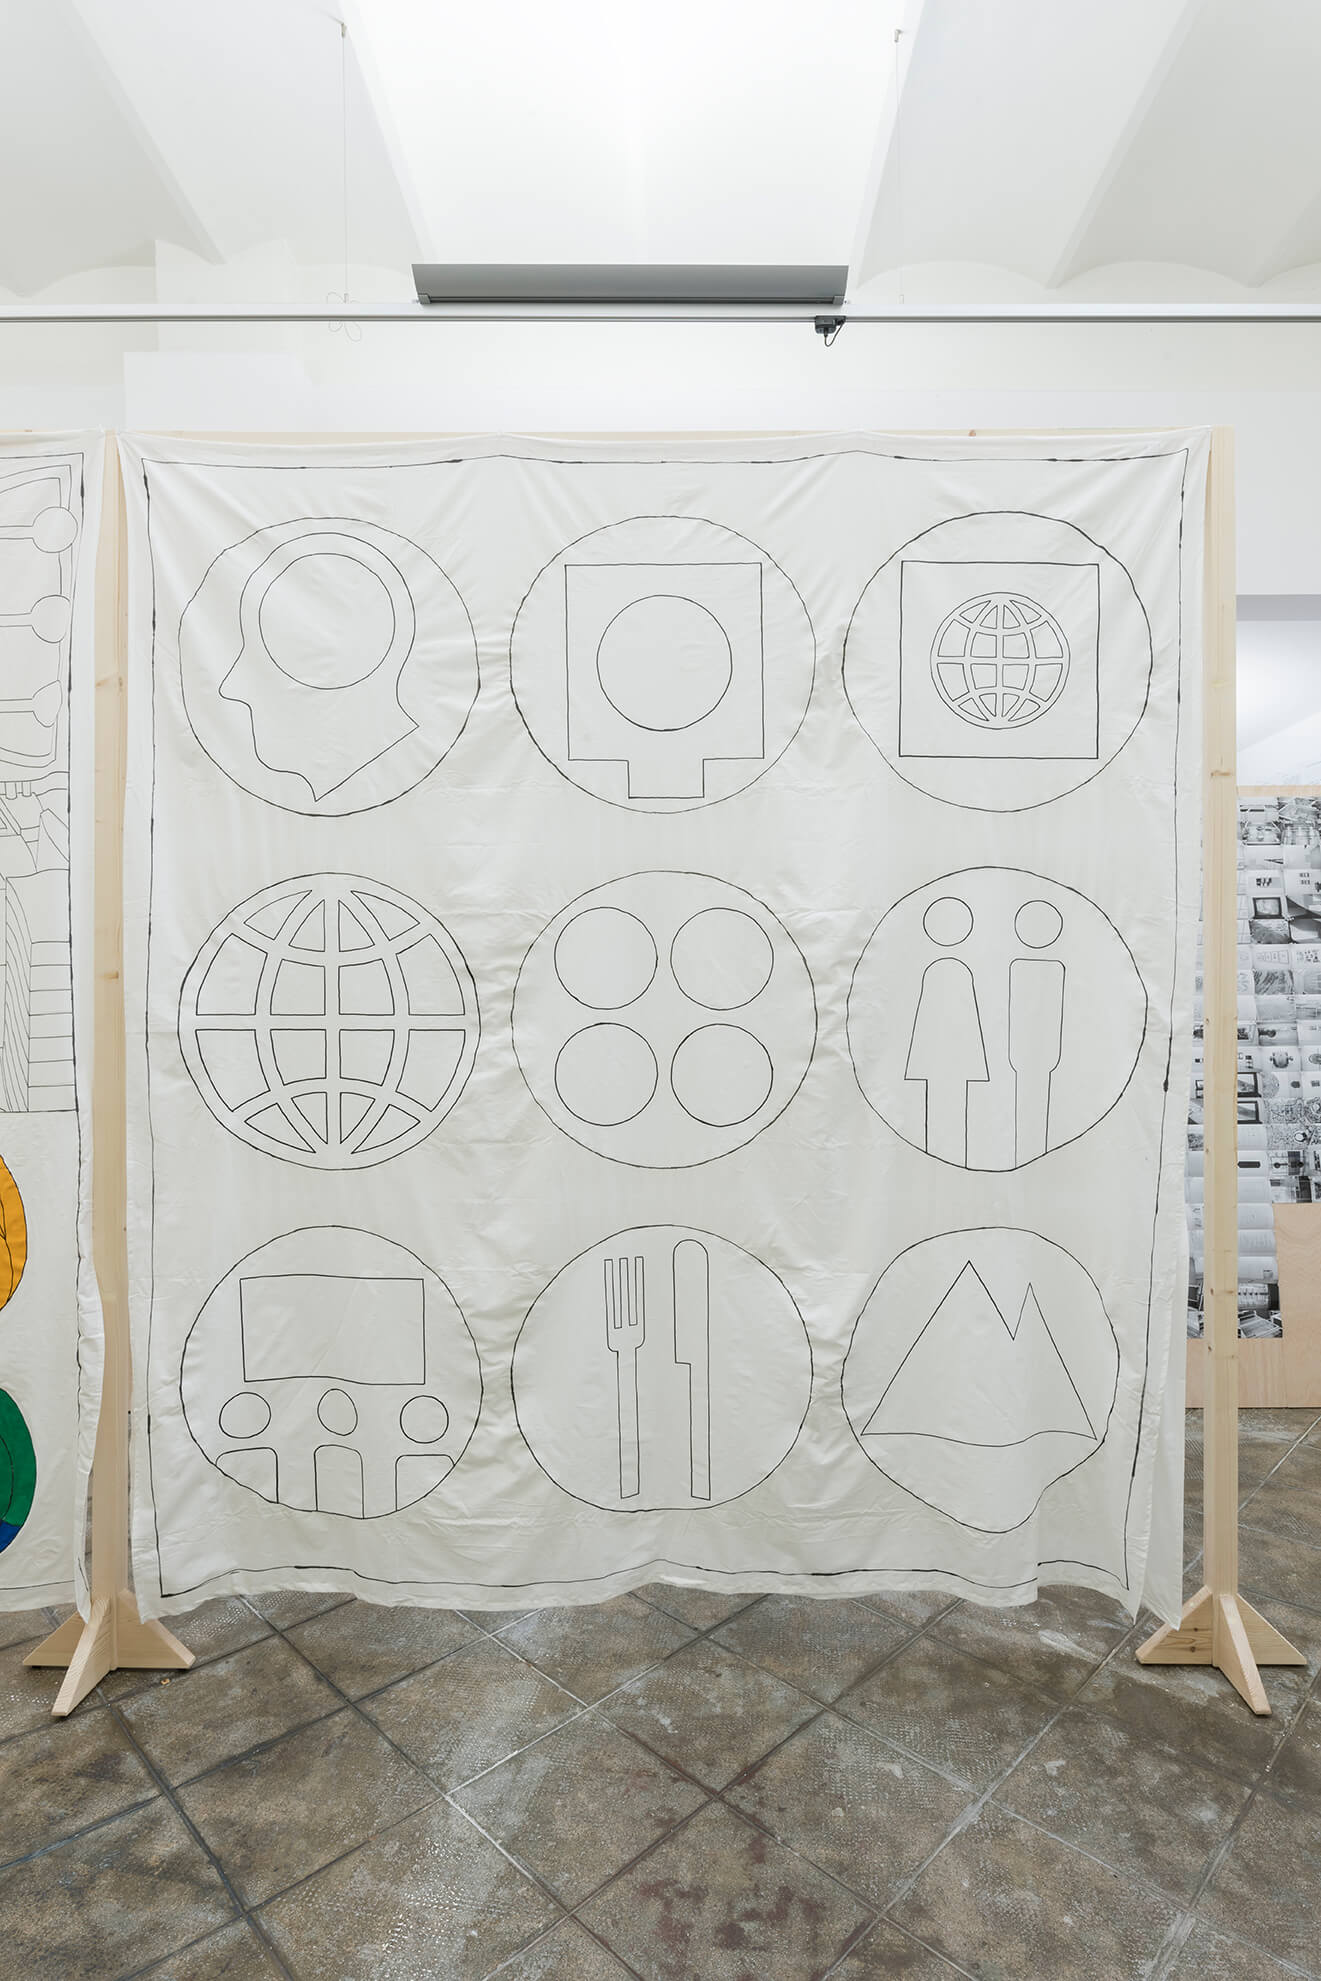 Untitled (Signs from the Magasin banners), 2018 | Representing The Work | ProjecteSD